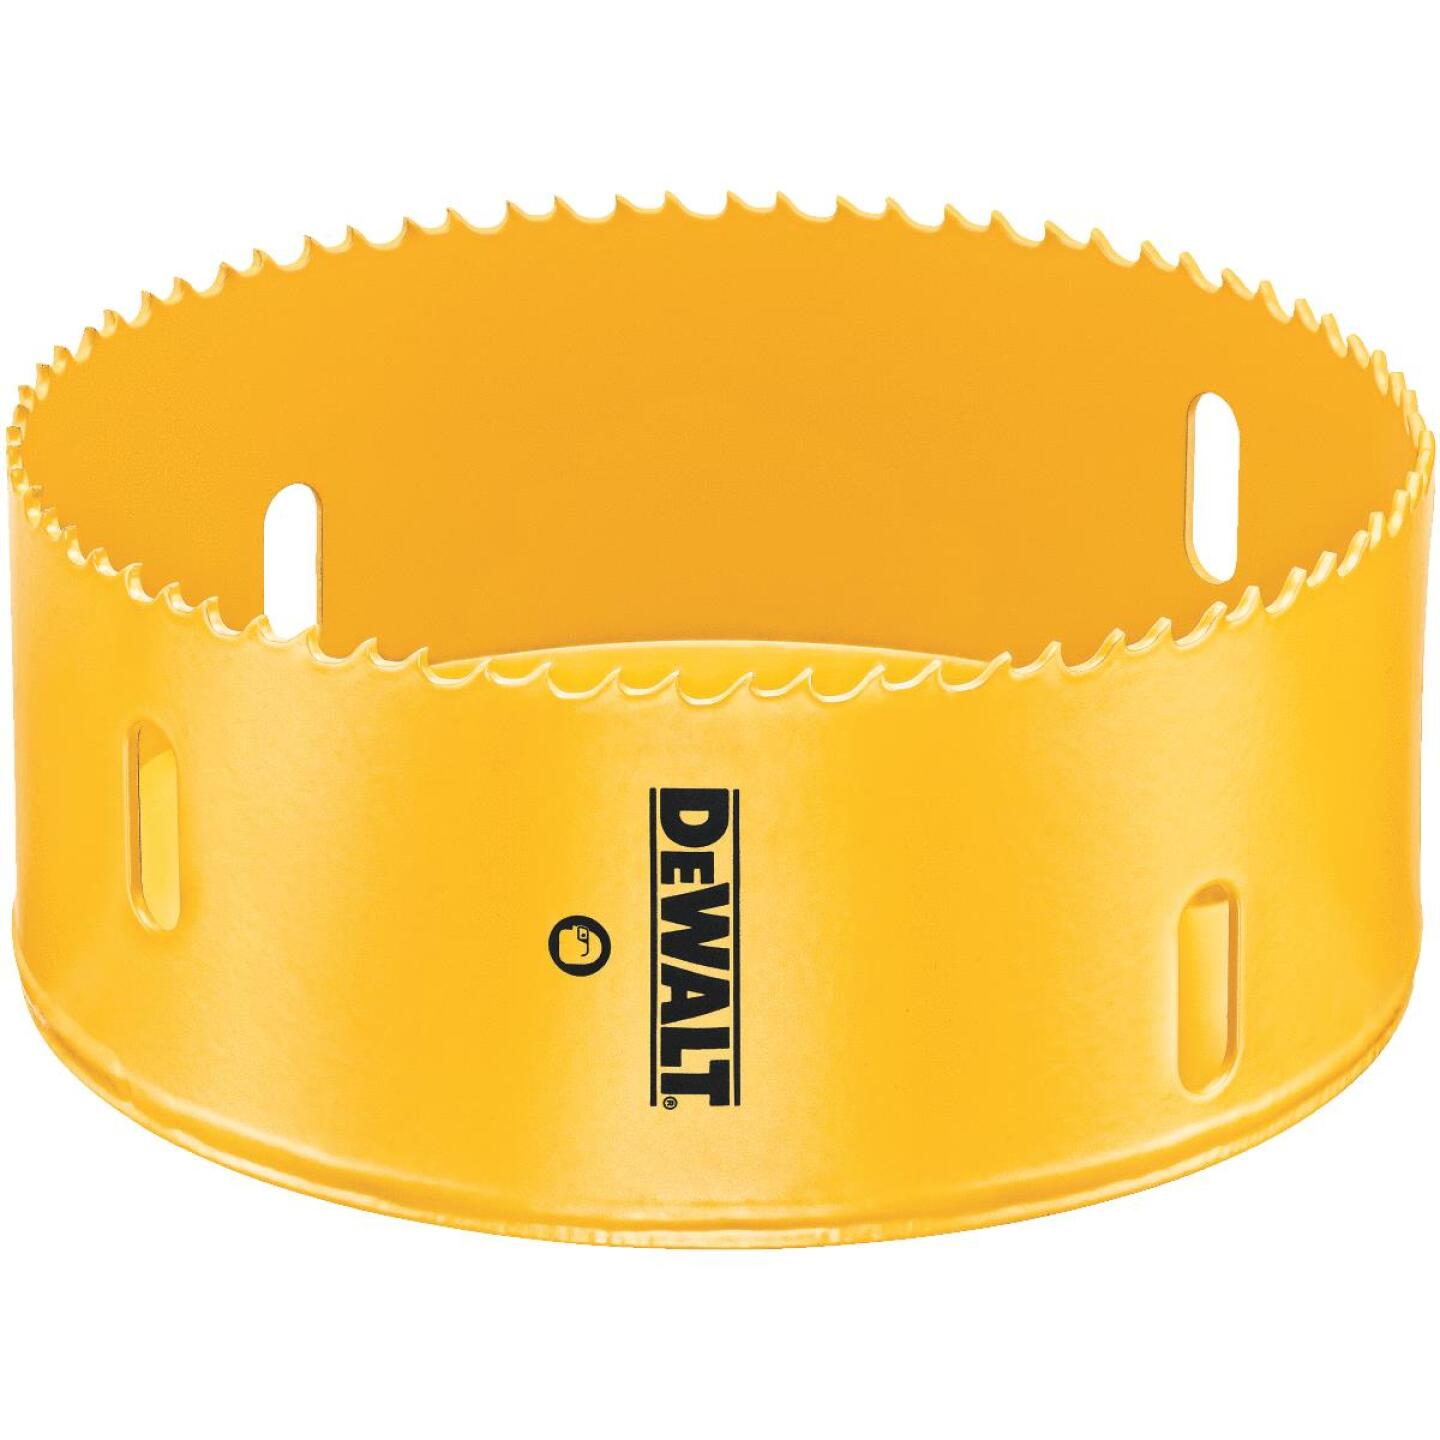 DeWalt 5 In. Bi-Metal Hole Saw Image 1